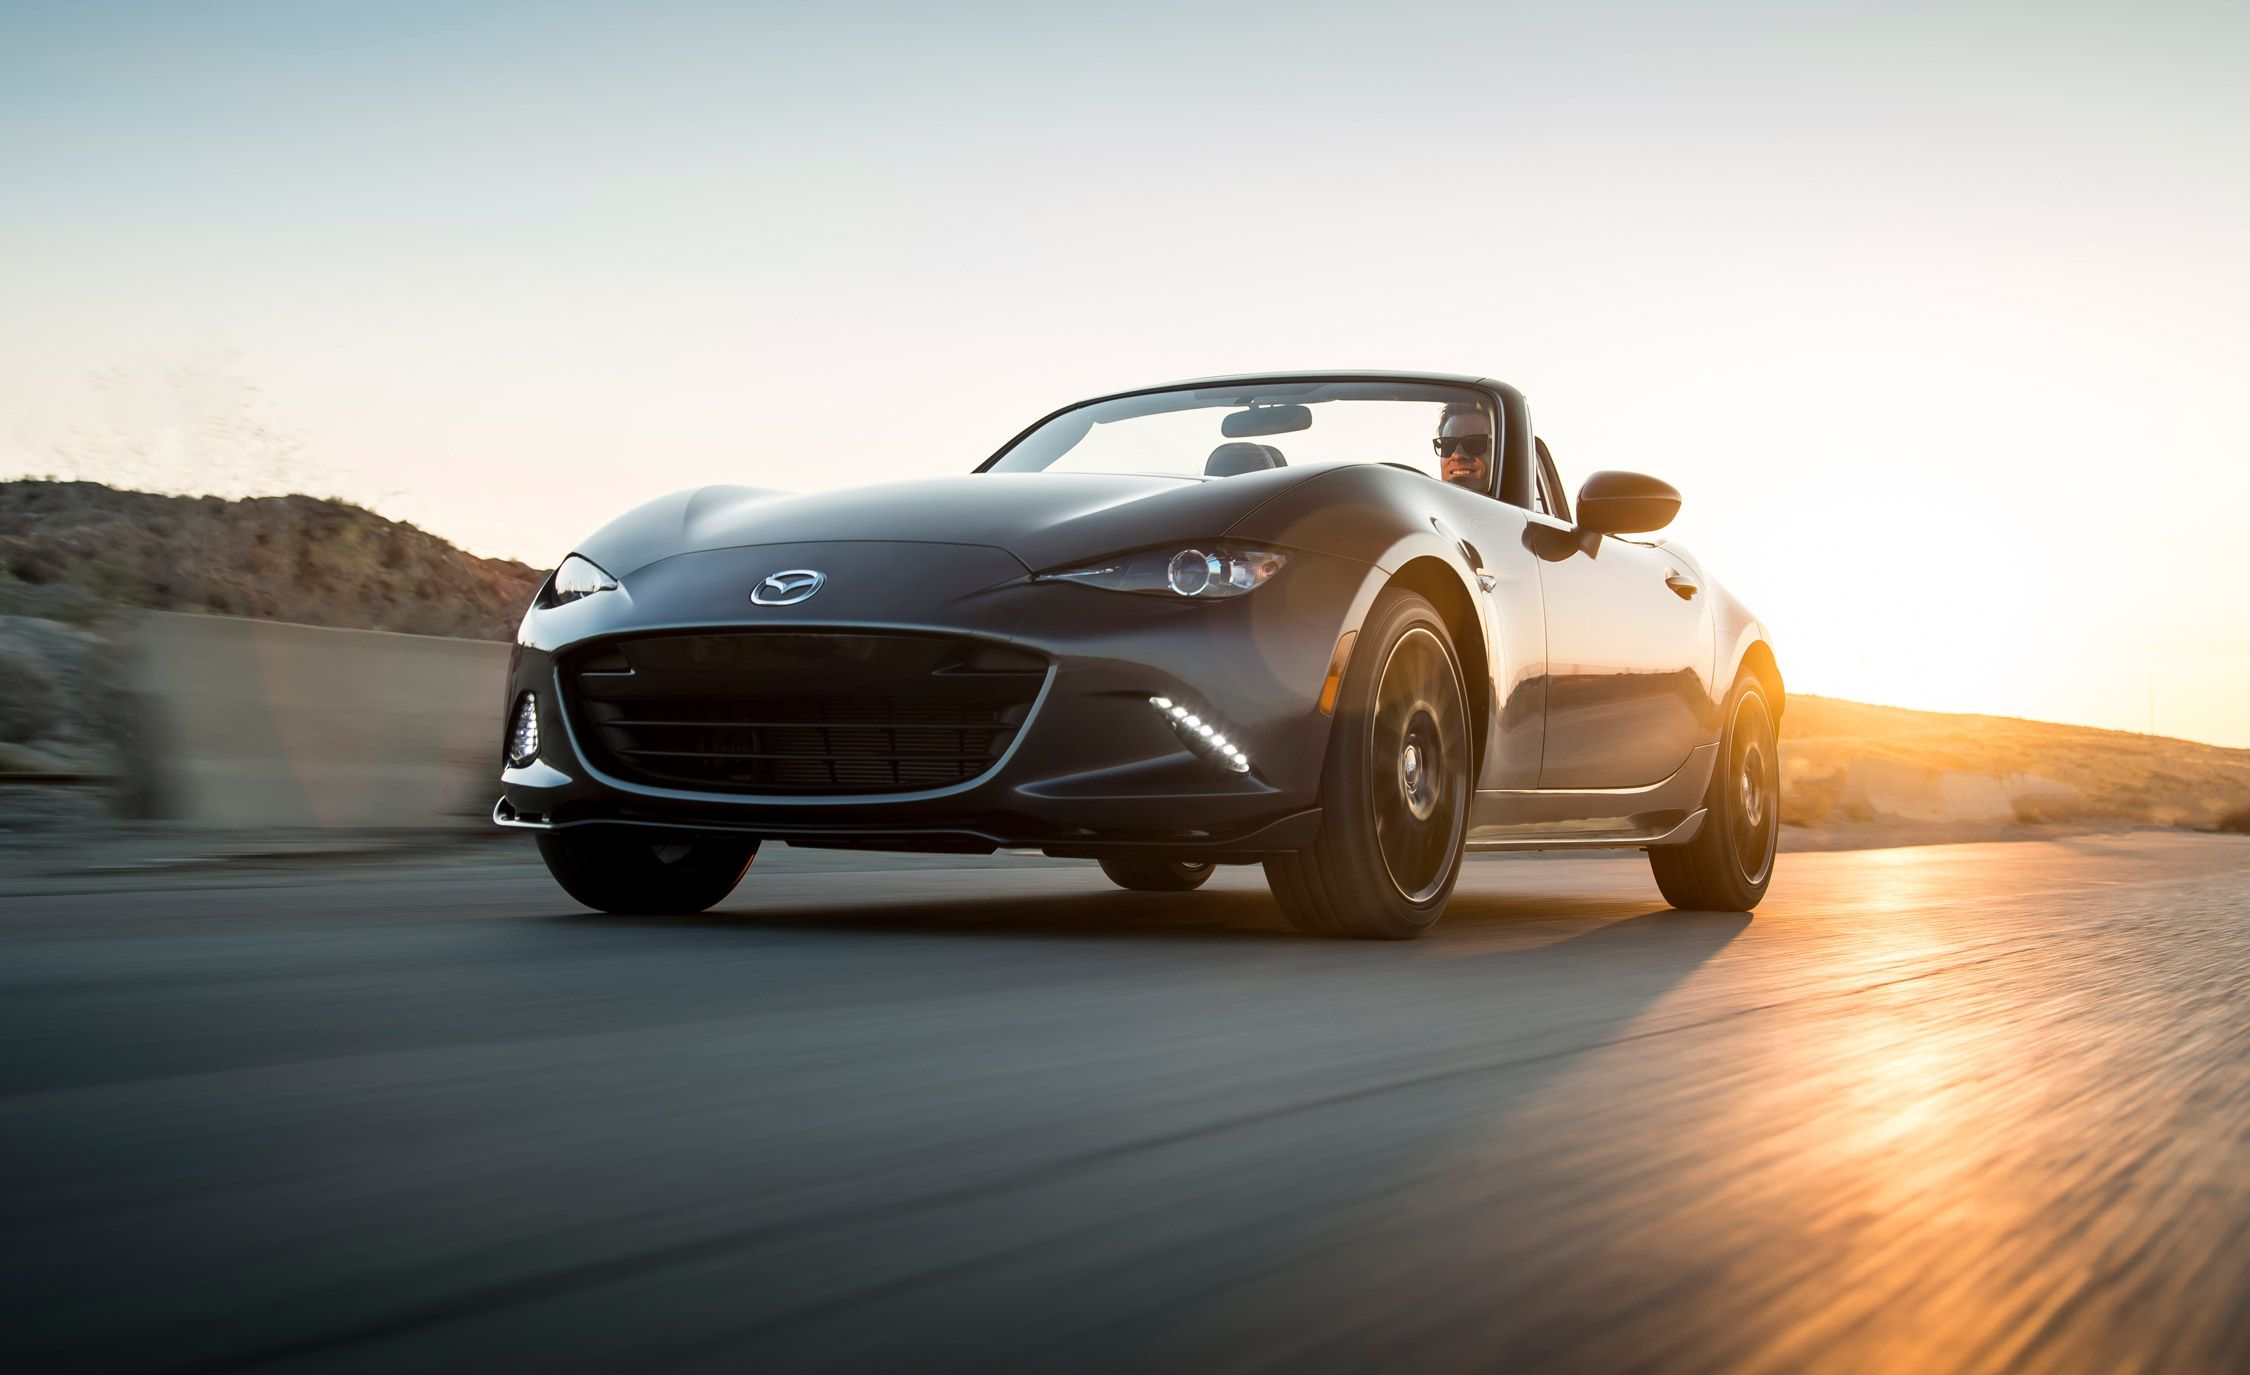 The 2019 Mazda MX-5 Miata Finally Has the Engine It Deserves